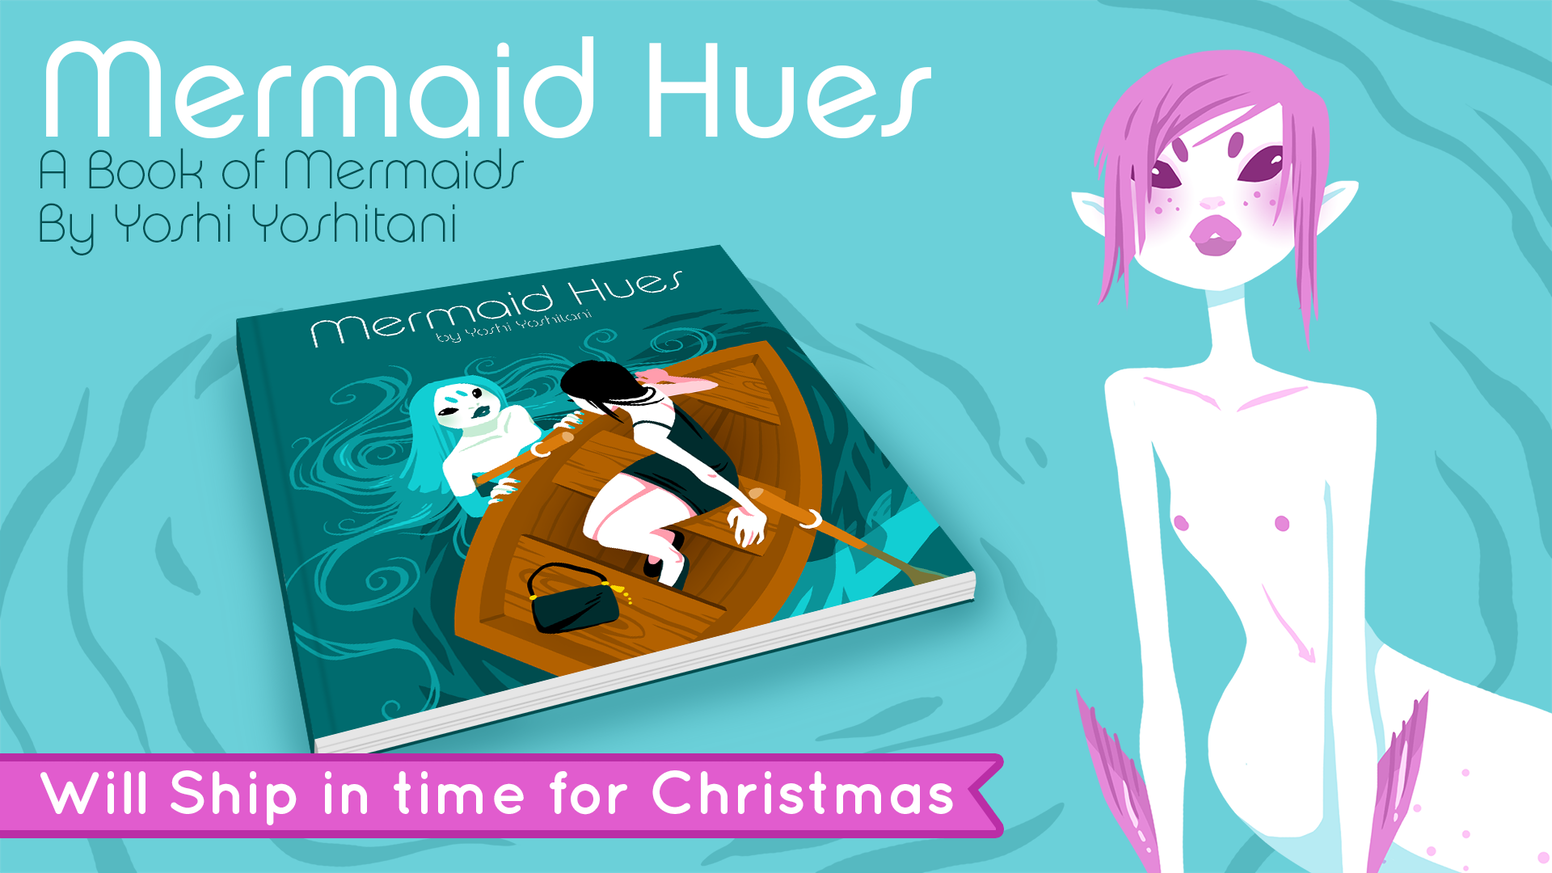 A hard cover book of Mermaids, each page a different mermaid and a different hue